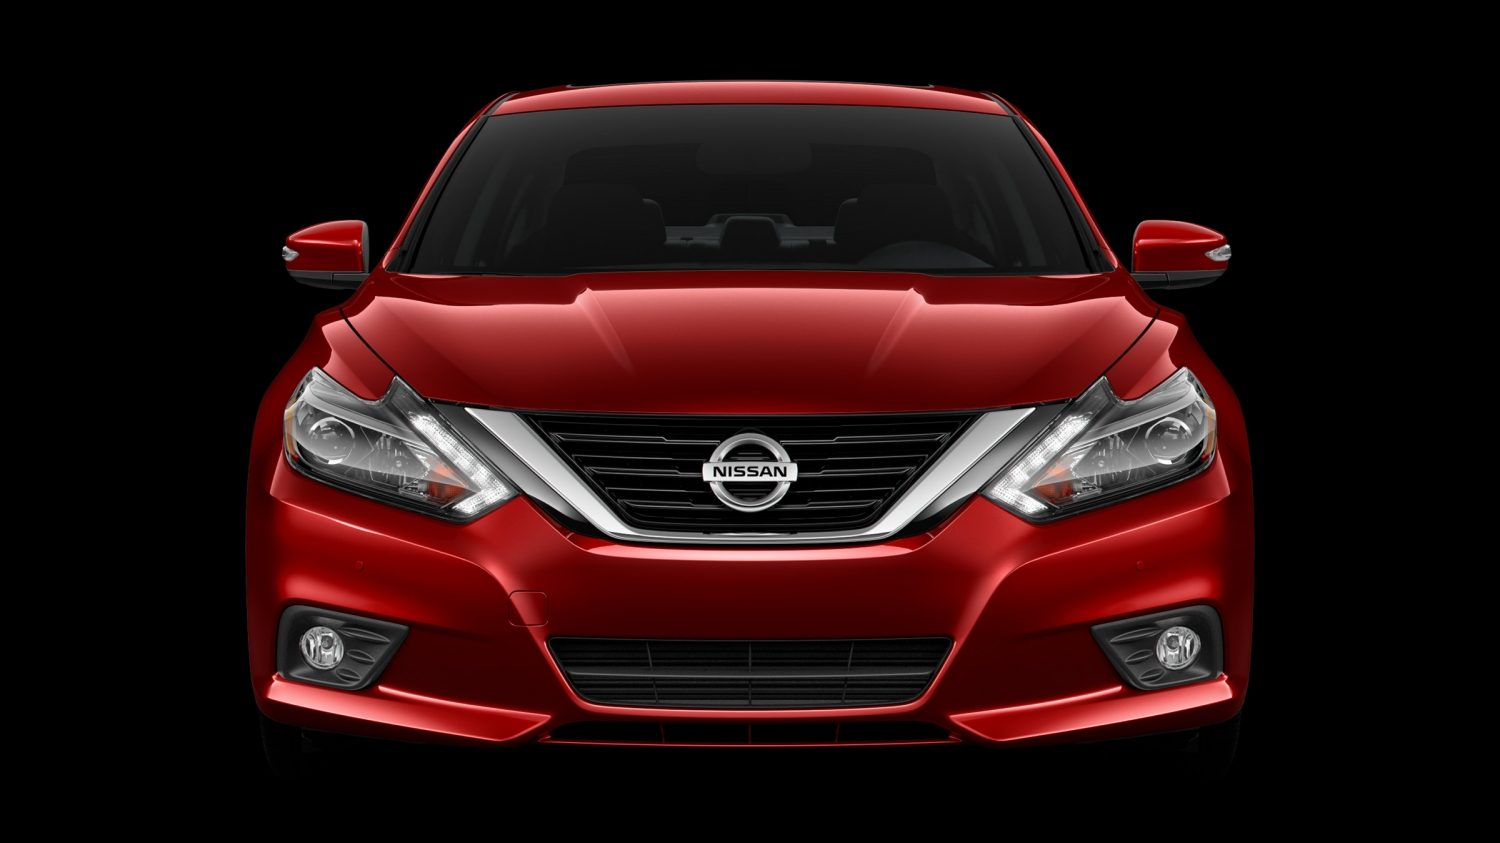 Nissan Altima shown from the front